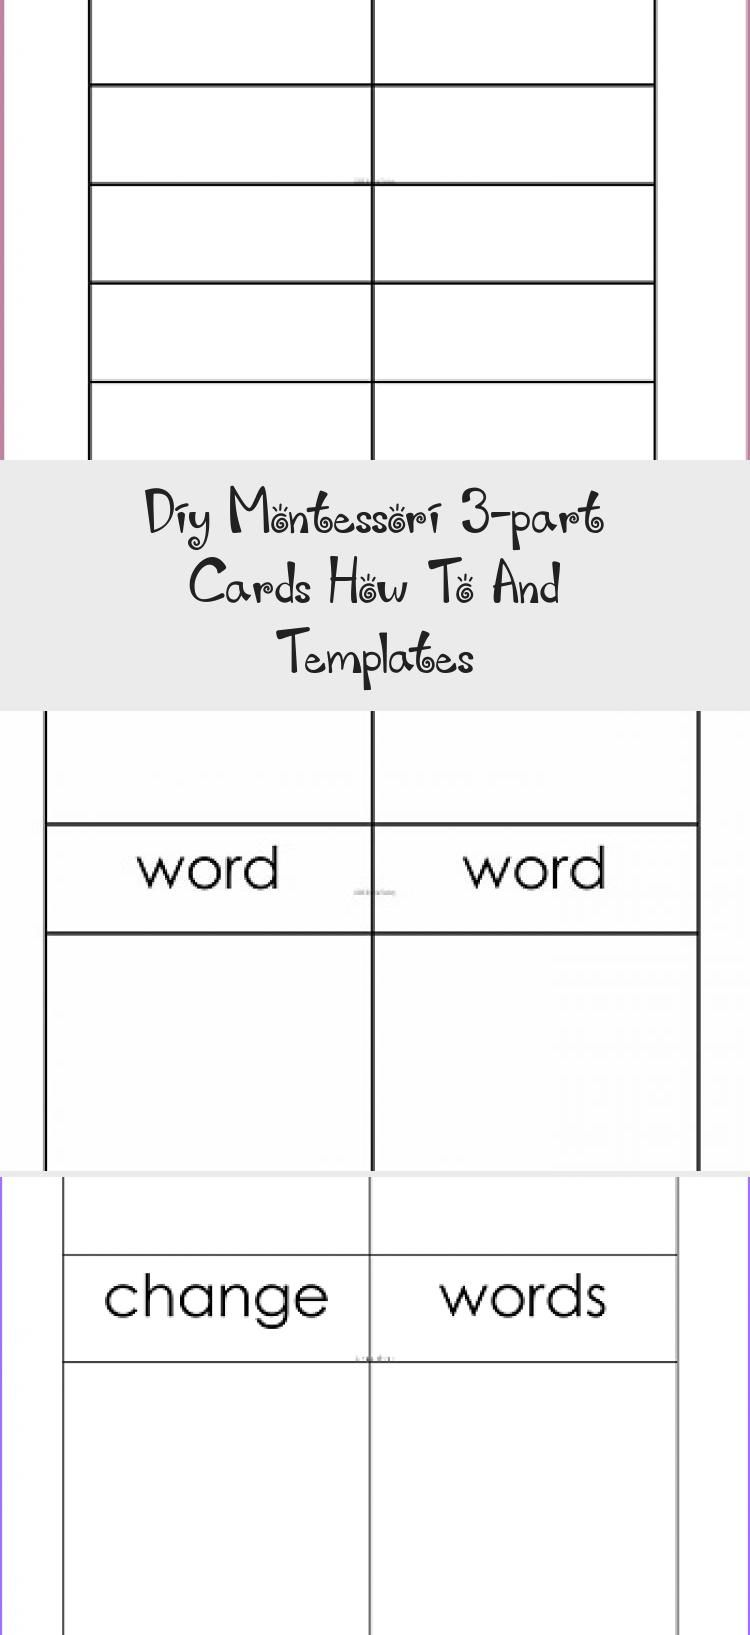 Diy Montessori 3 Part Cards How To And Templates Informational Blog Post And Video With Information About How In 2020 Templates Template Freebie Pinterest Templates